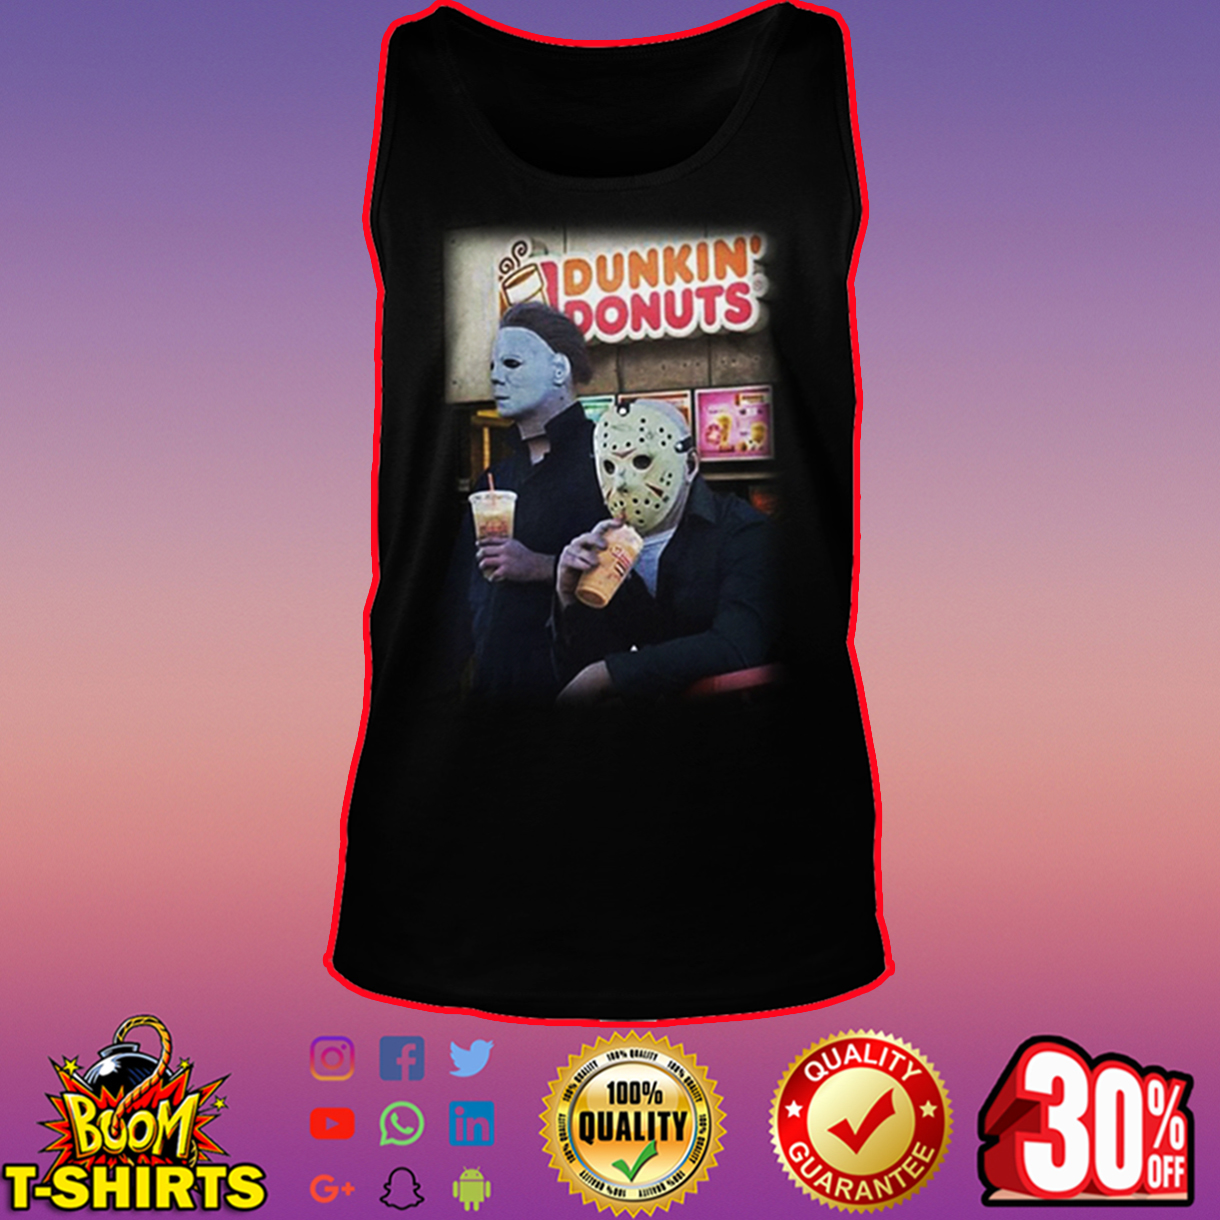 Michael Myers and Jason Voorhees Dunkin' Donuts tank top